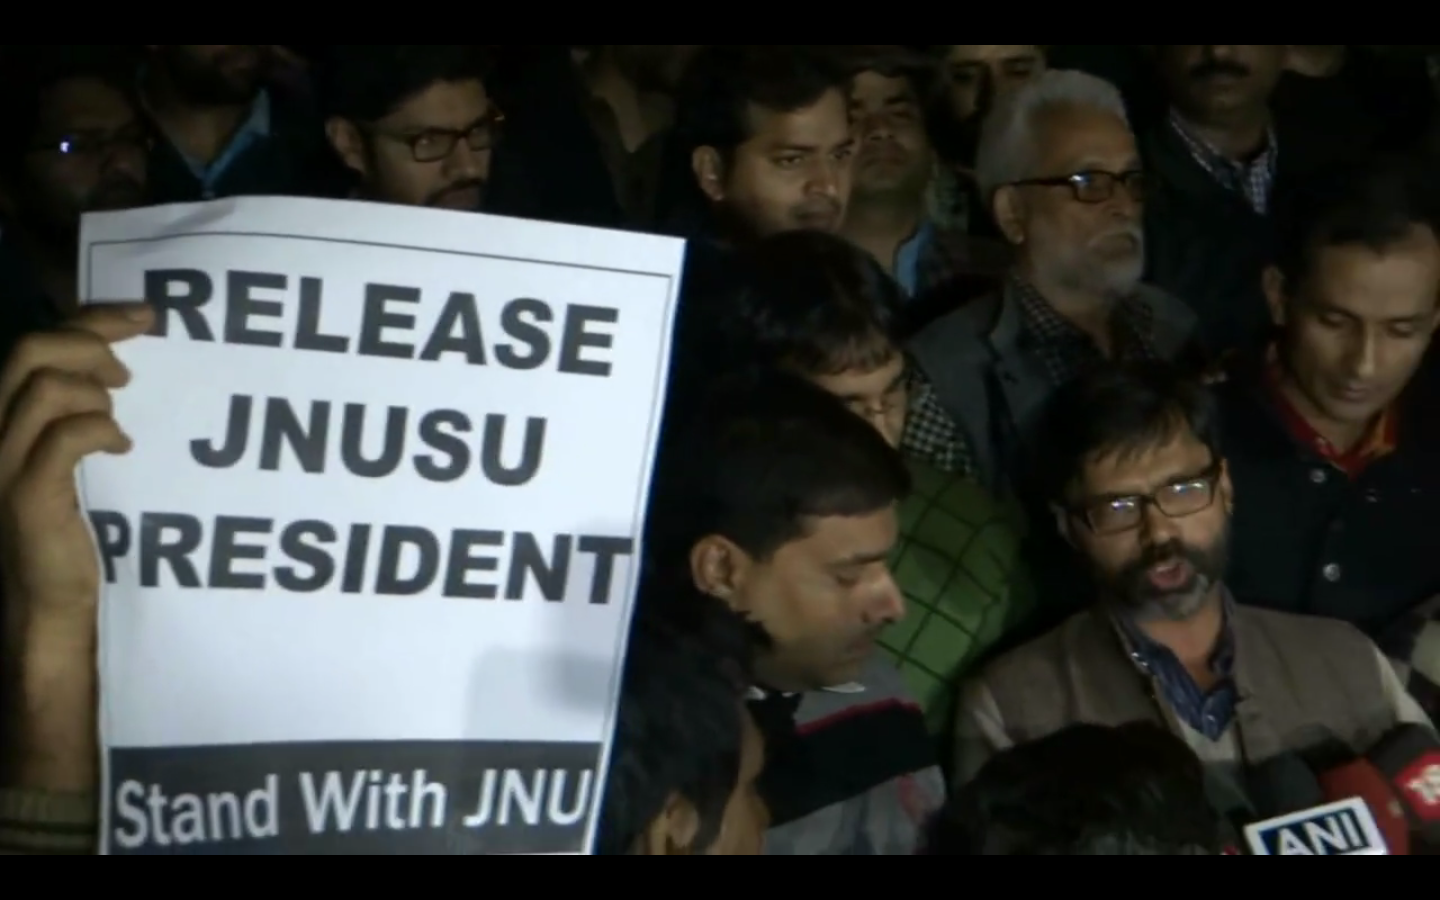 Arrest 'Anti India Elements' Says Rajnath, So Police Pin 'Sedition' on JNUSU Head